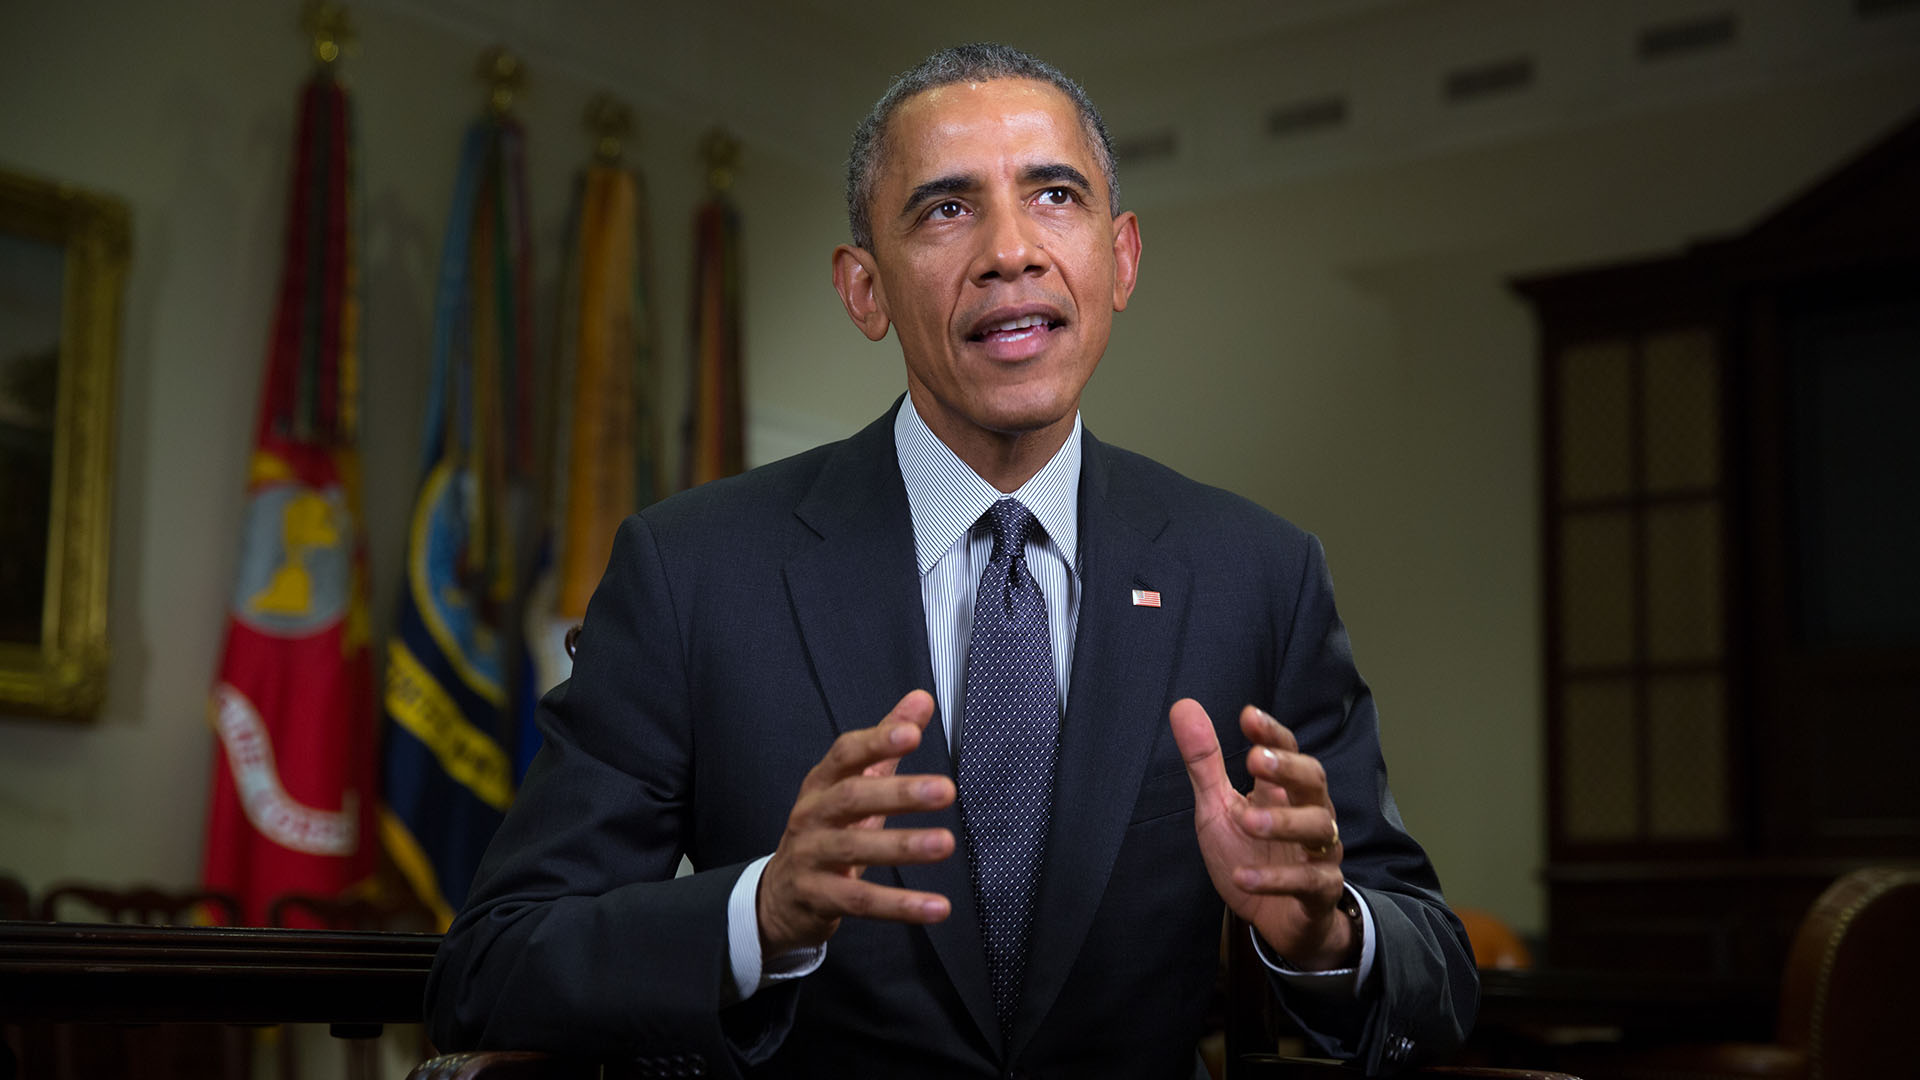 President Obama Tapes the Weekly Address on January 30